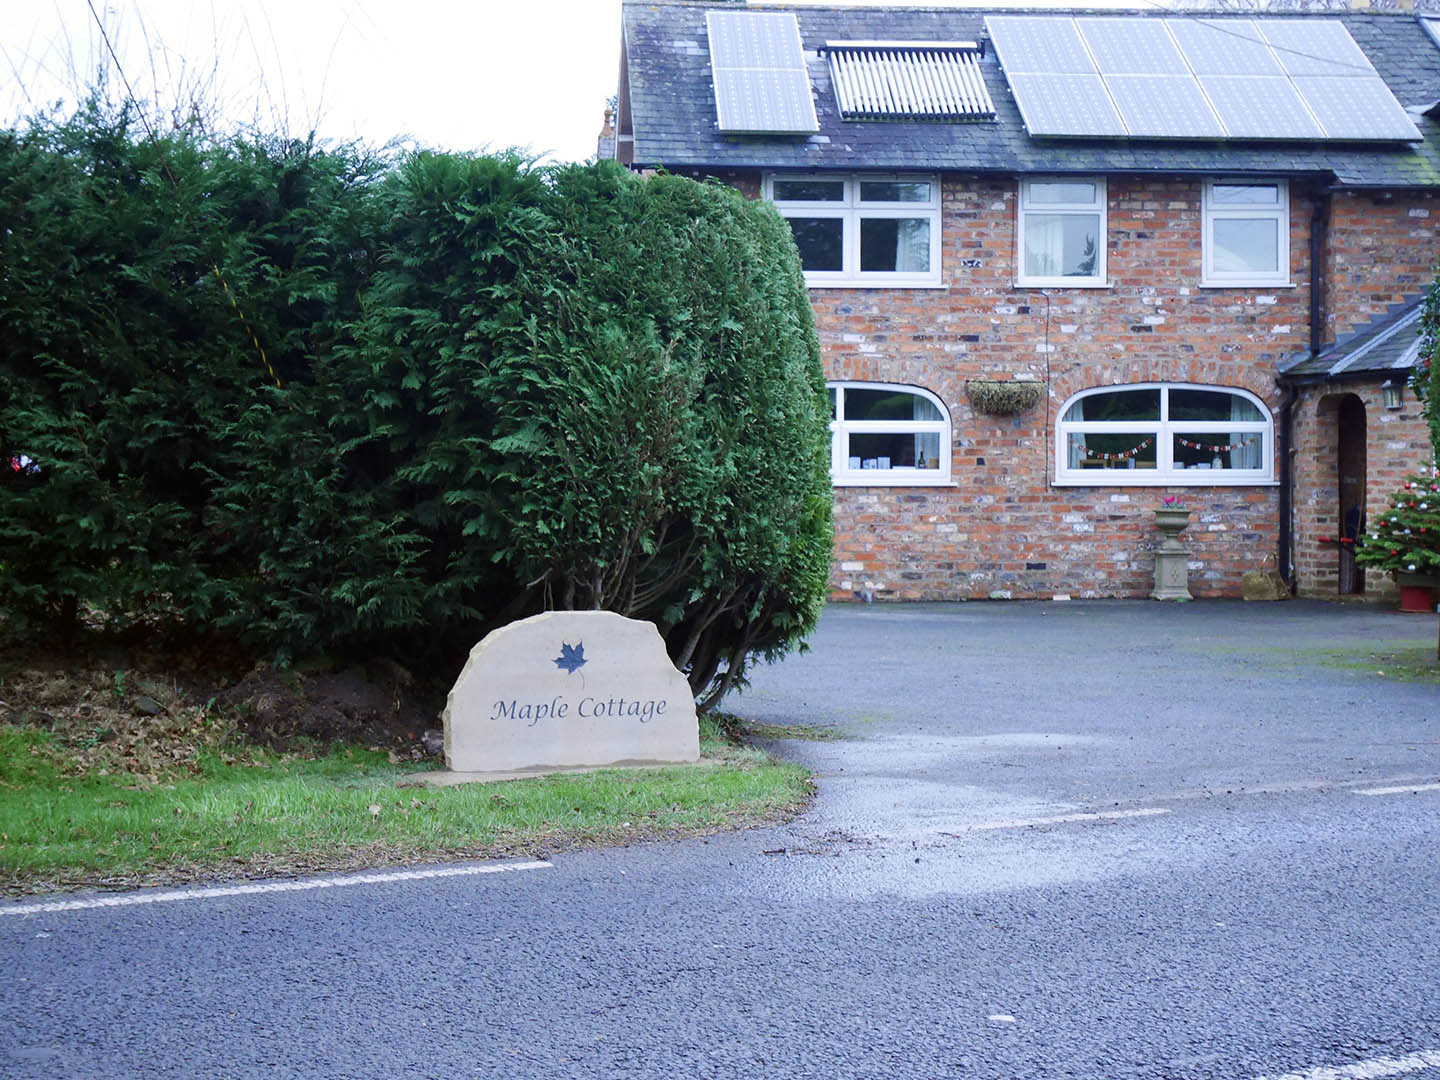 freestanding yorkshire stone house sign engraved with text maple cottage  thumbnail 01e640377a3e